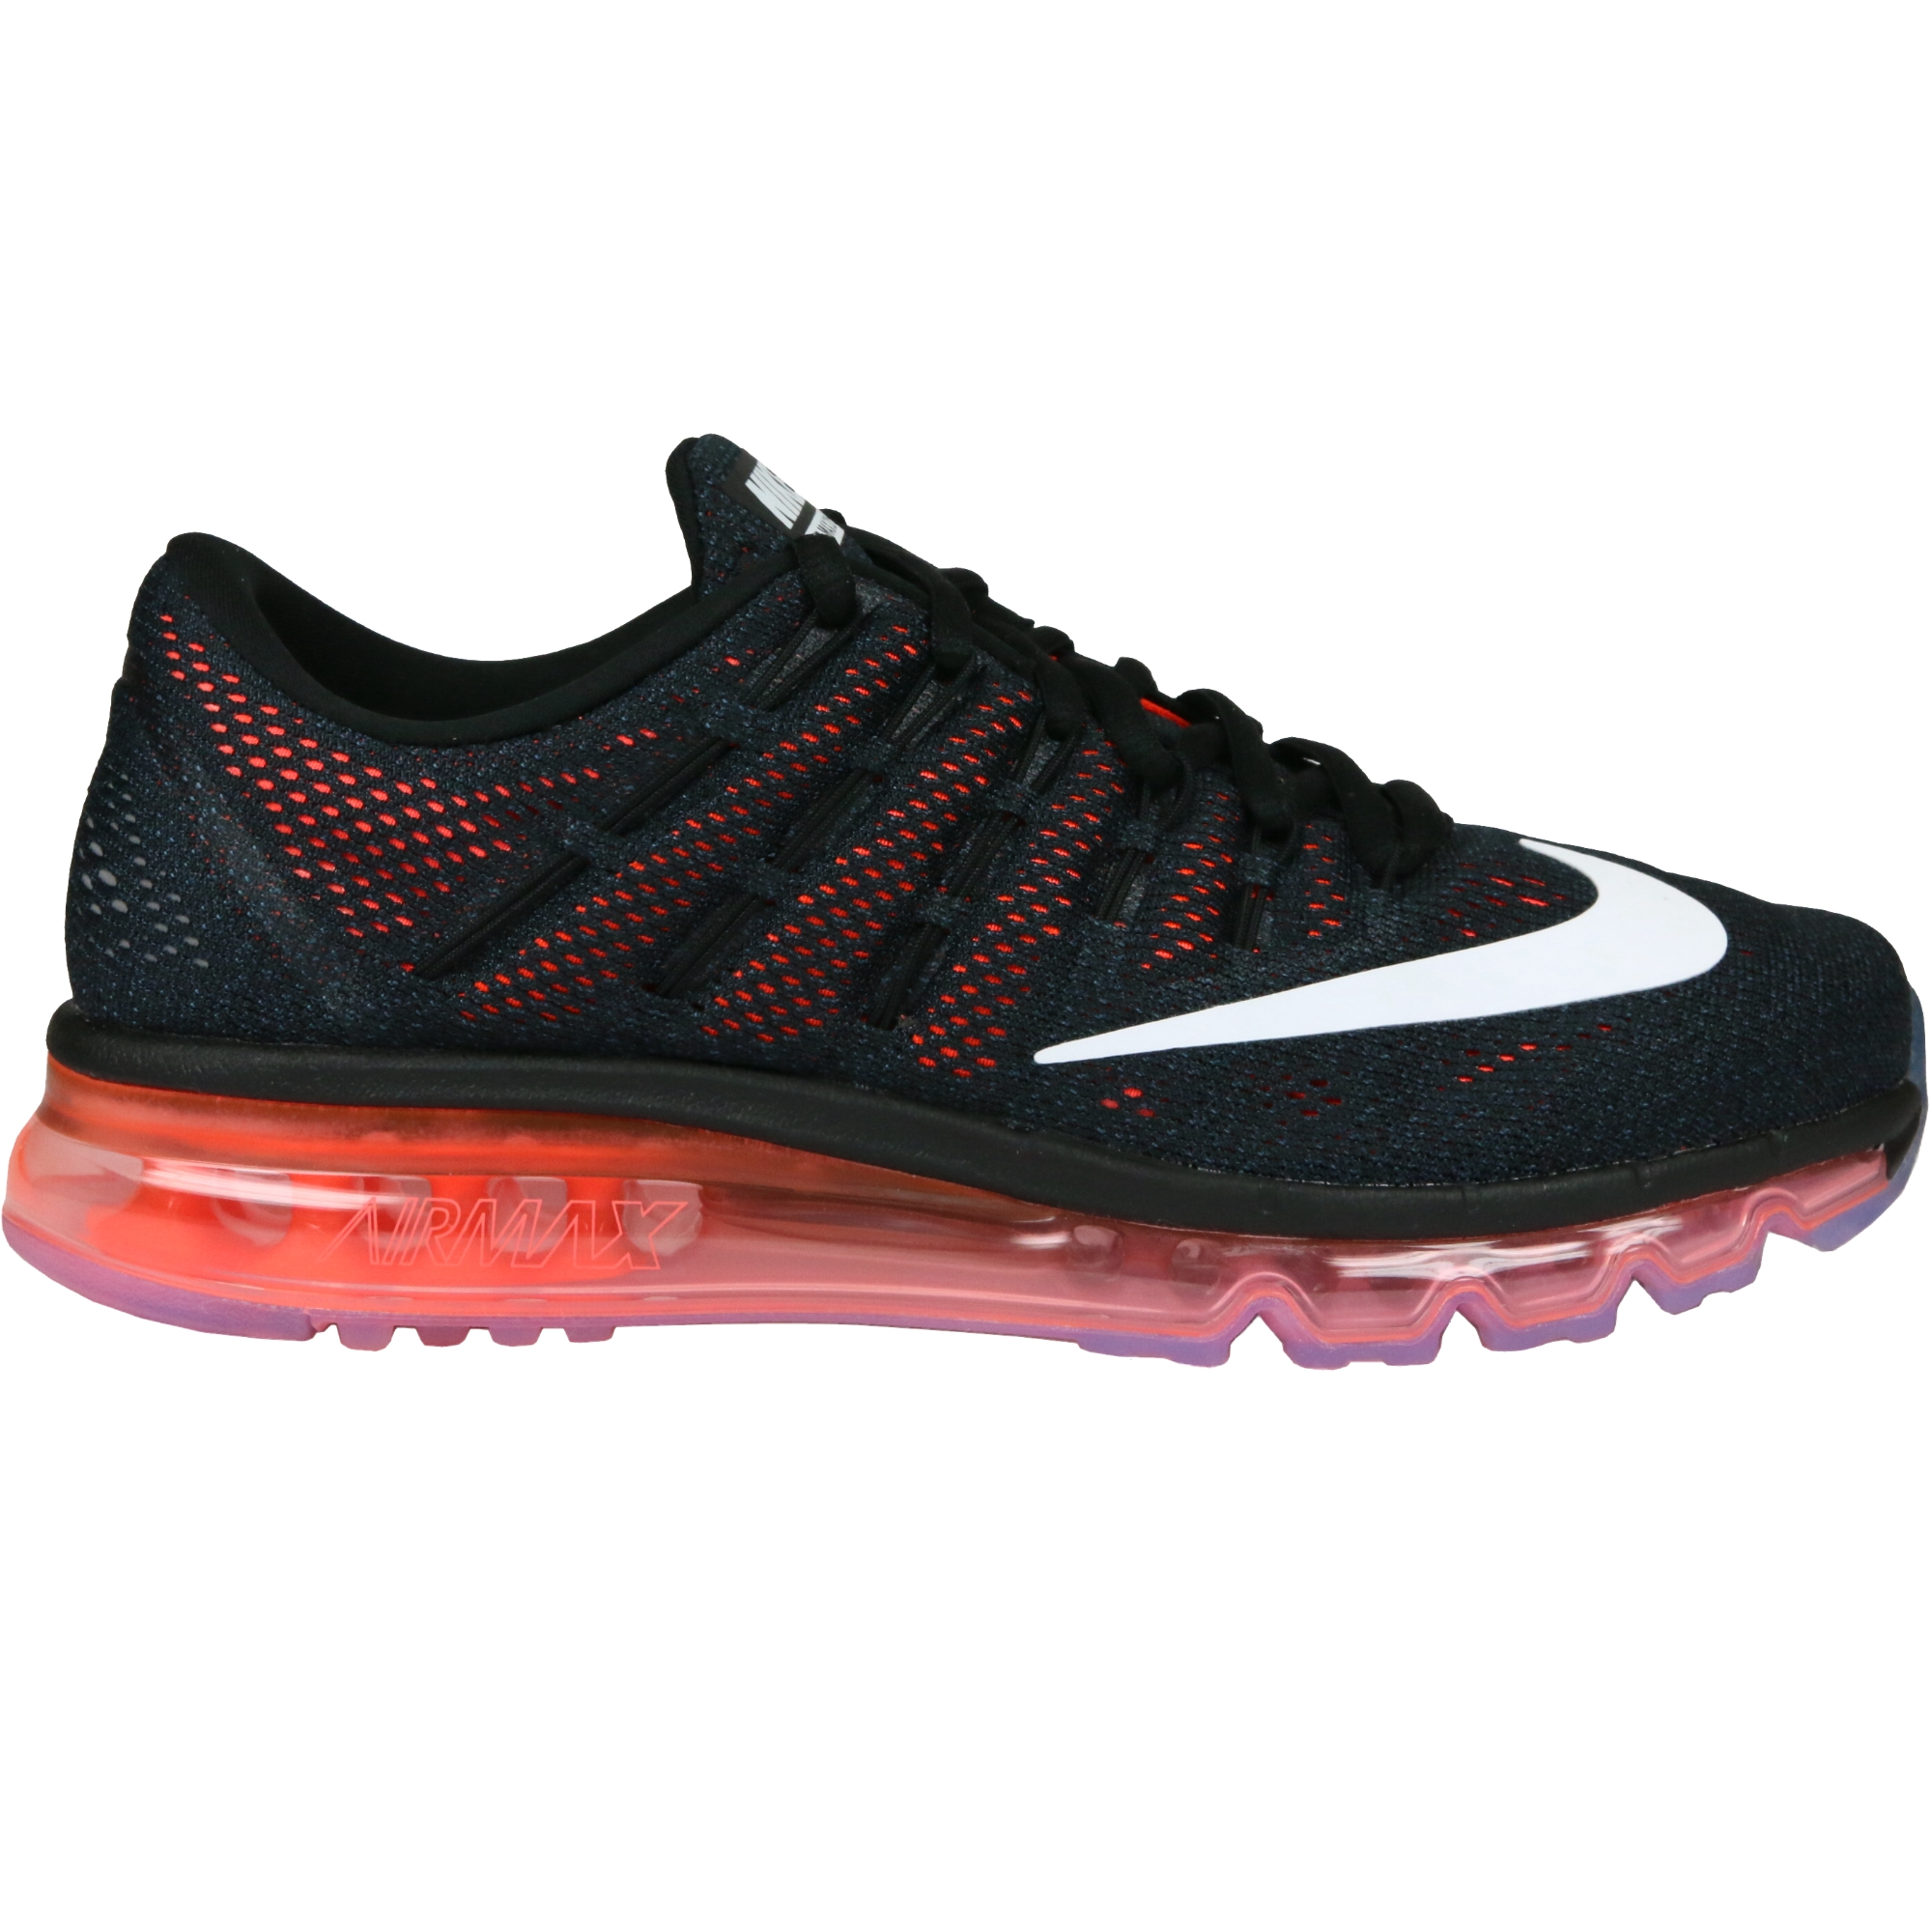 nike air max 2016 schuhe laufschuhe turnschuhe sneaker. Black Bedroom Furniture Sets. Home Design Ideas